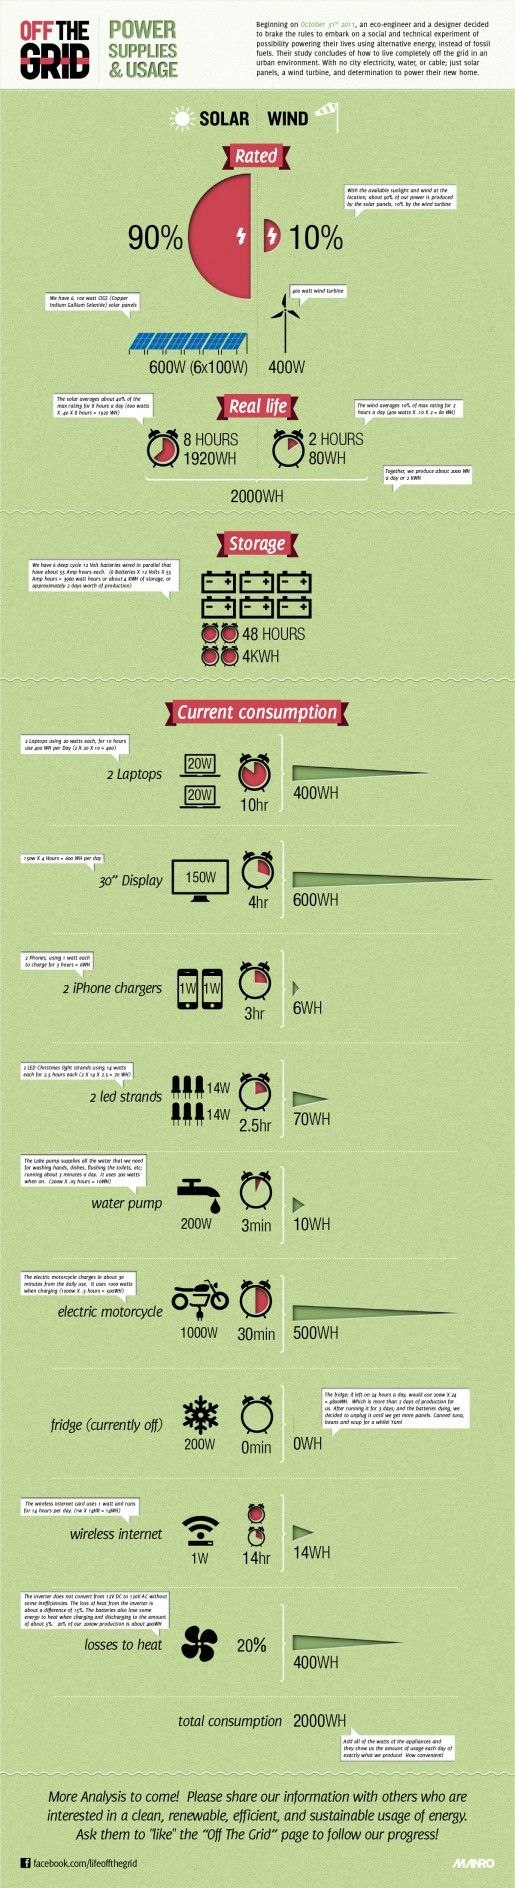 Living OFF-THE-GRID Infographic